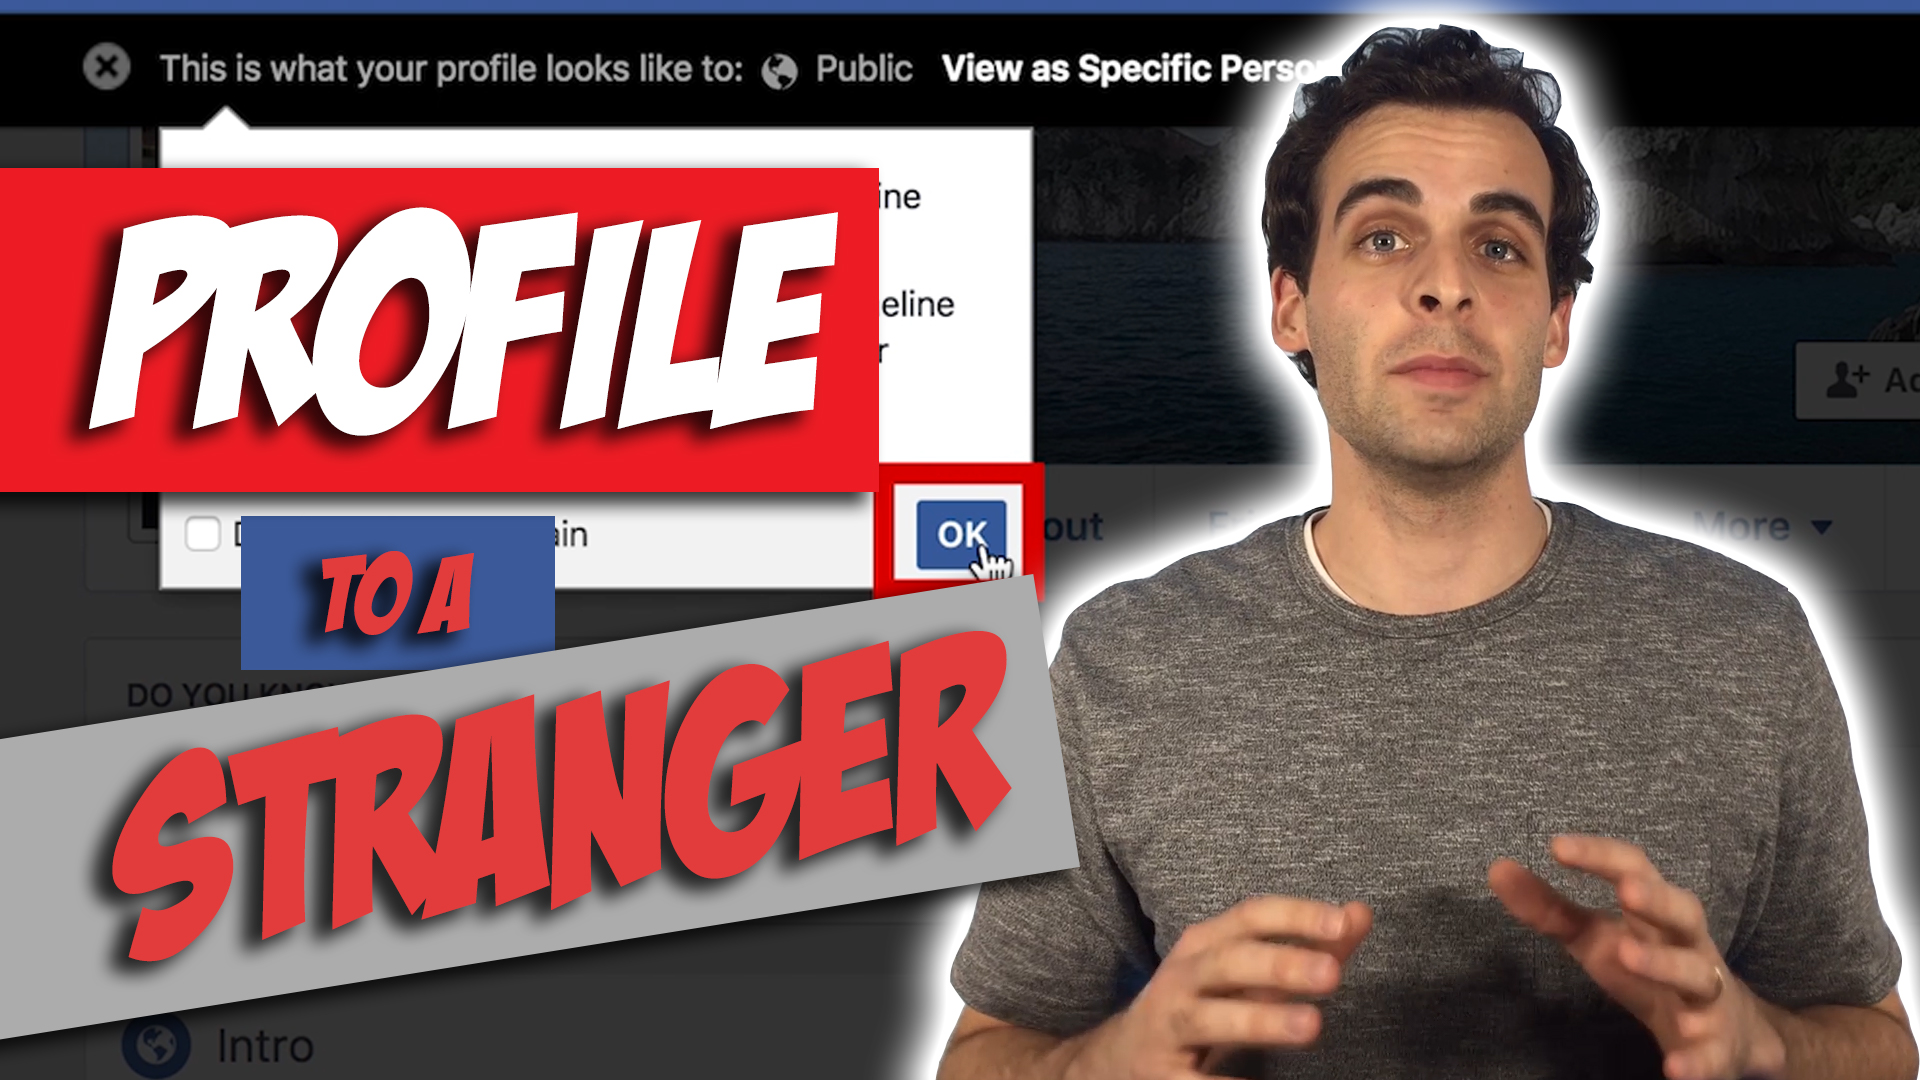 What Your Facebook Profile Looks Like to Strangers